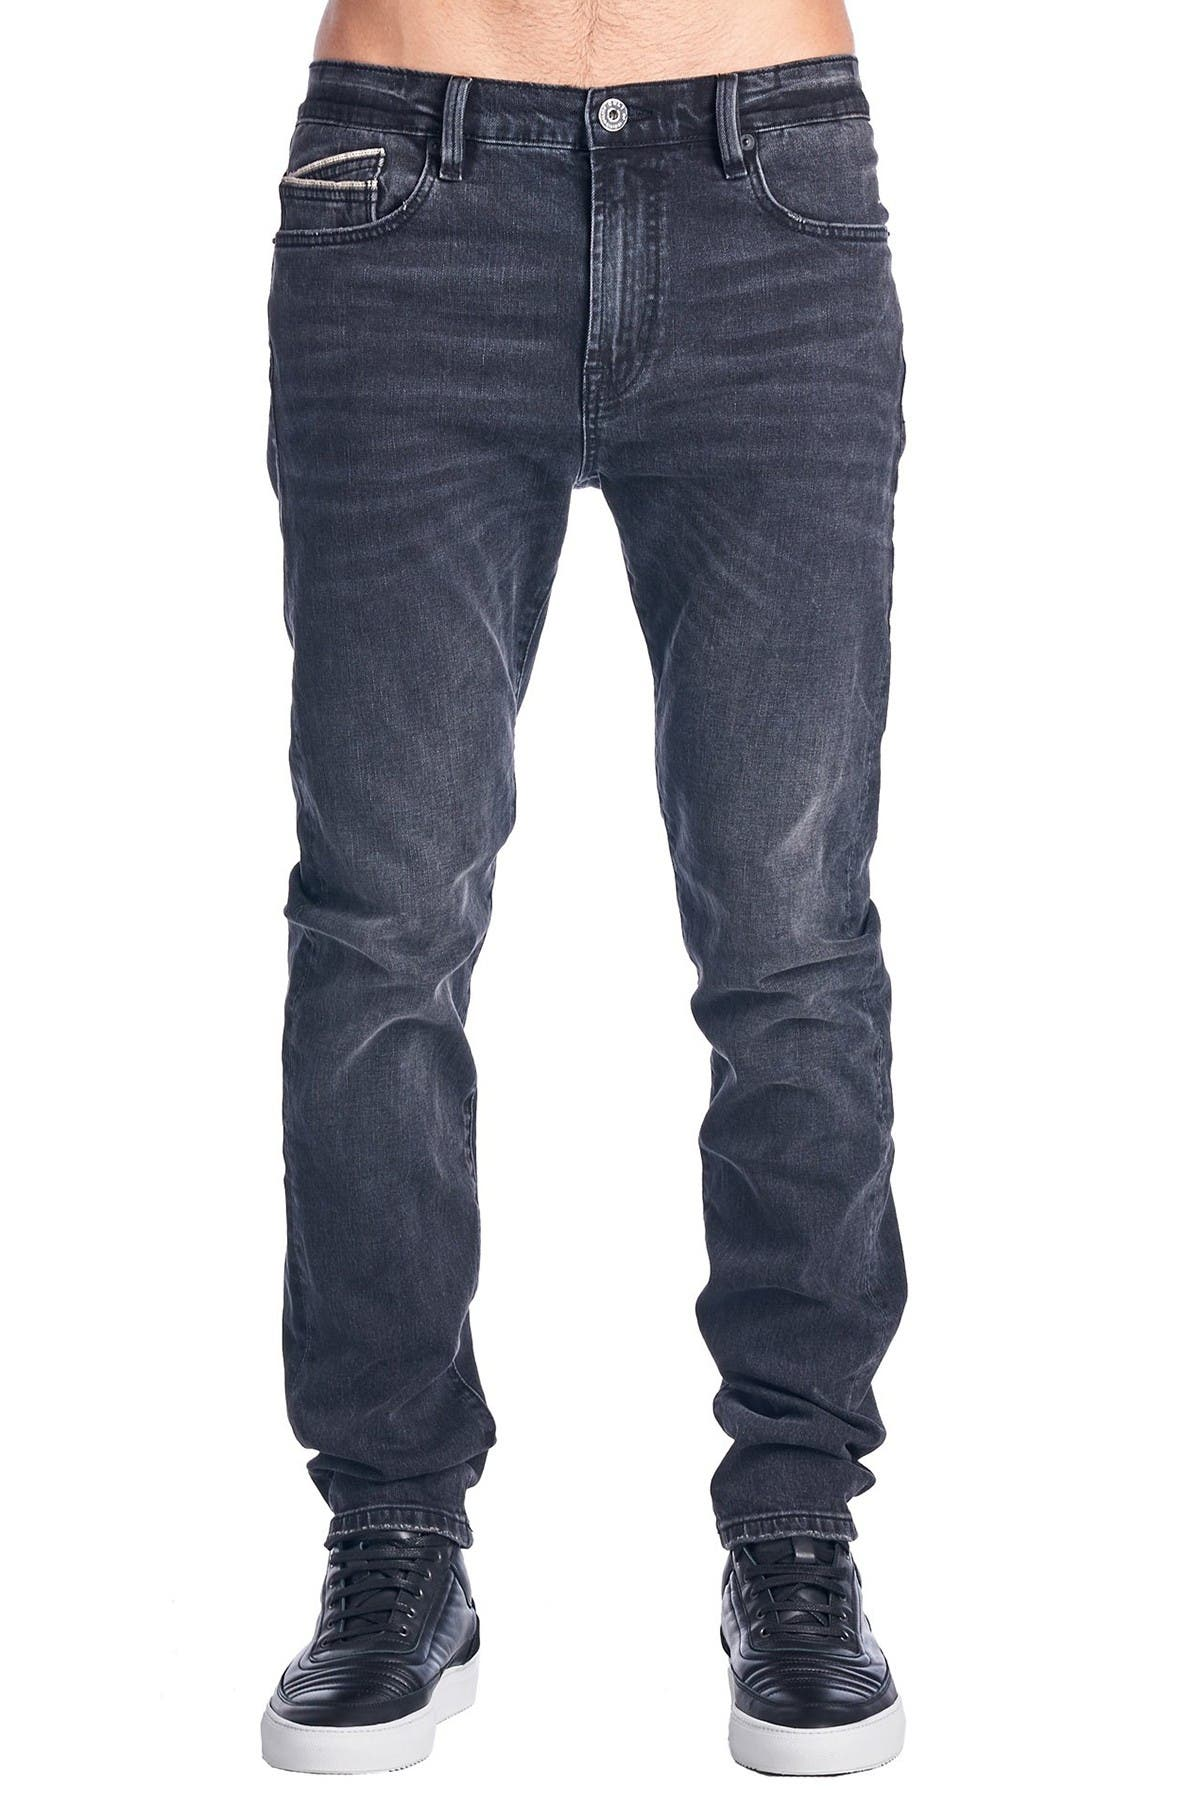 Image of Cult Of Individuality Stilt Stretch Skinny Jeans